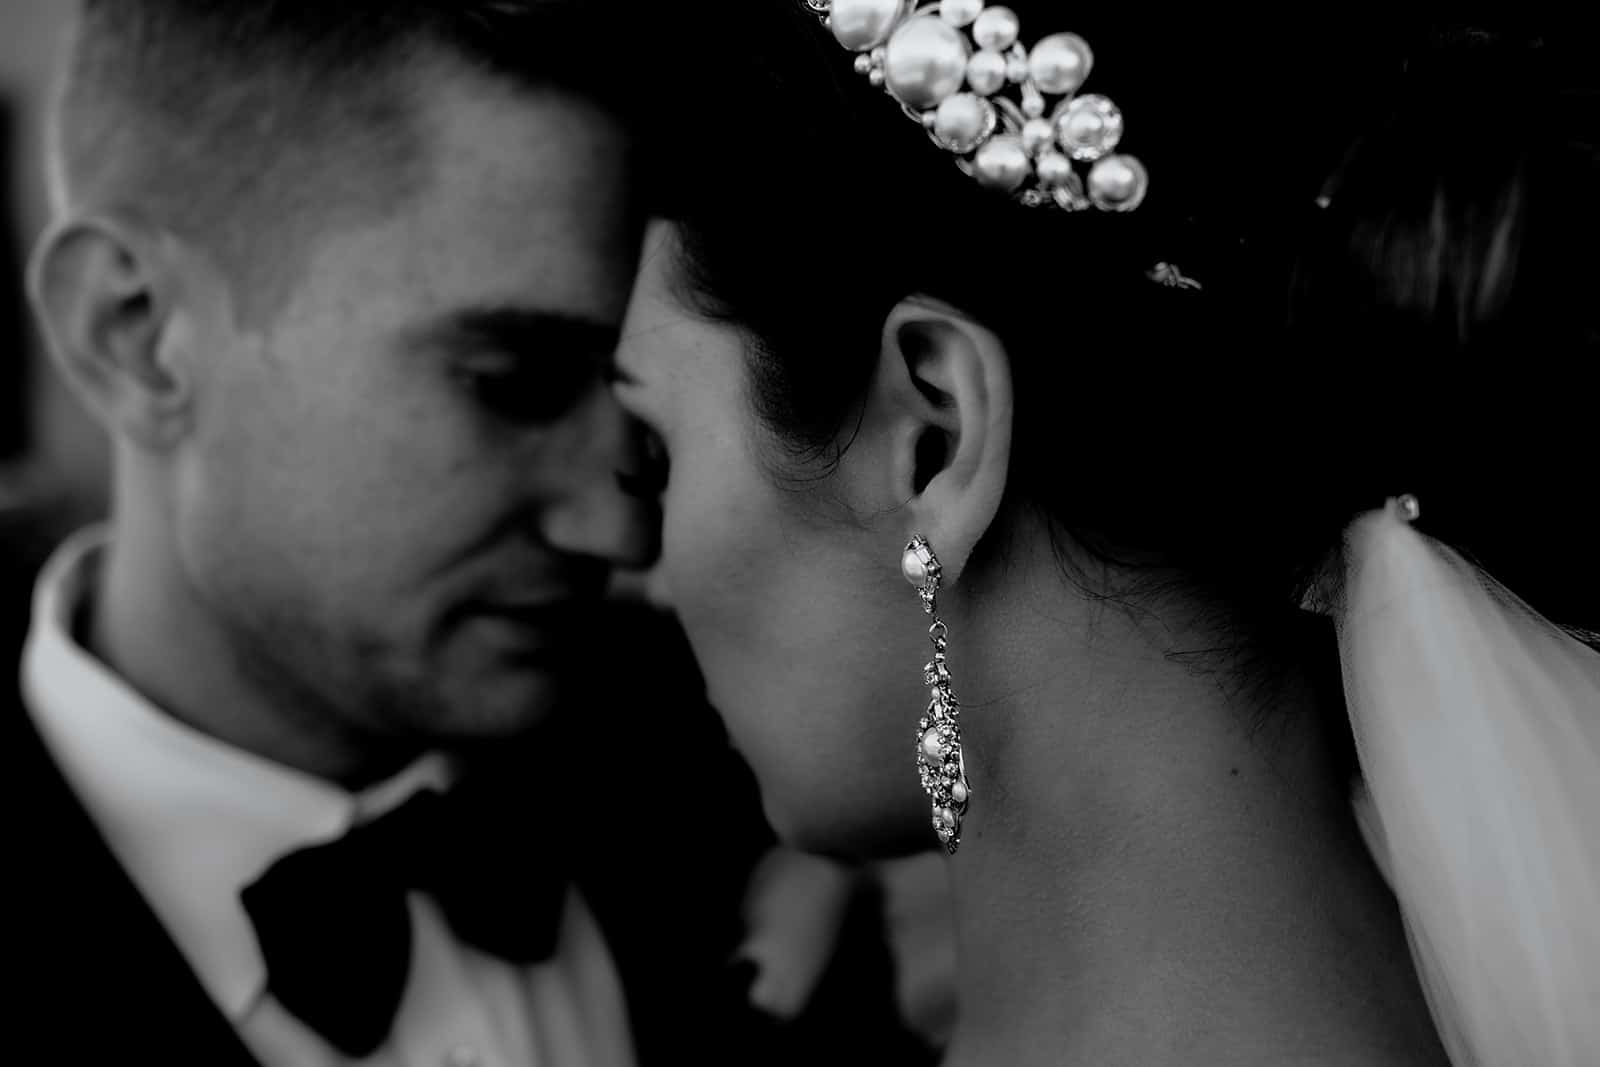 black and white close up looking over brides shoulder as the bride and groom touch foreheads and dangling earring in the center of the image